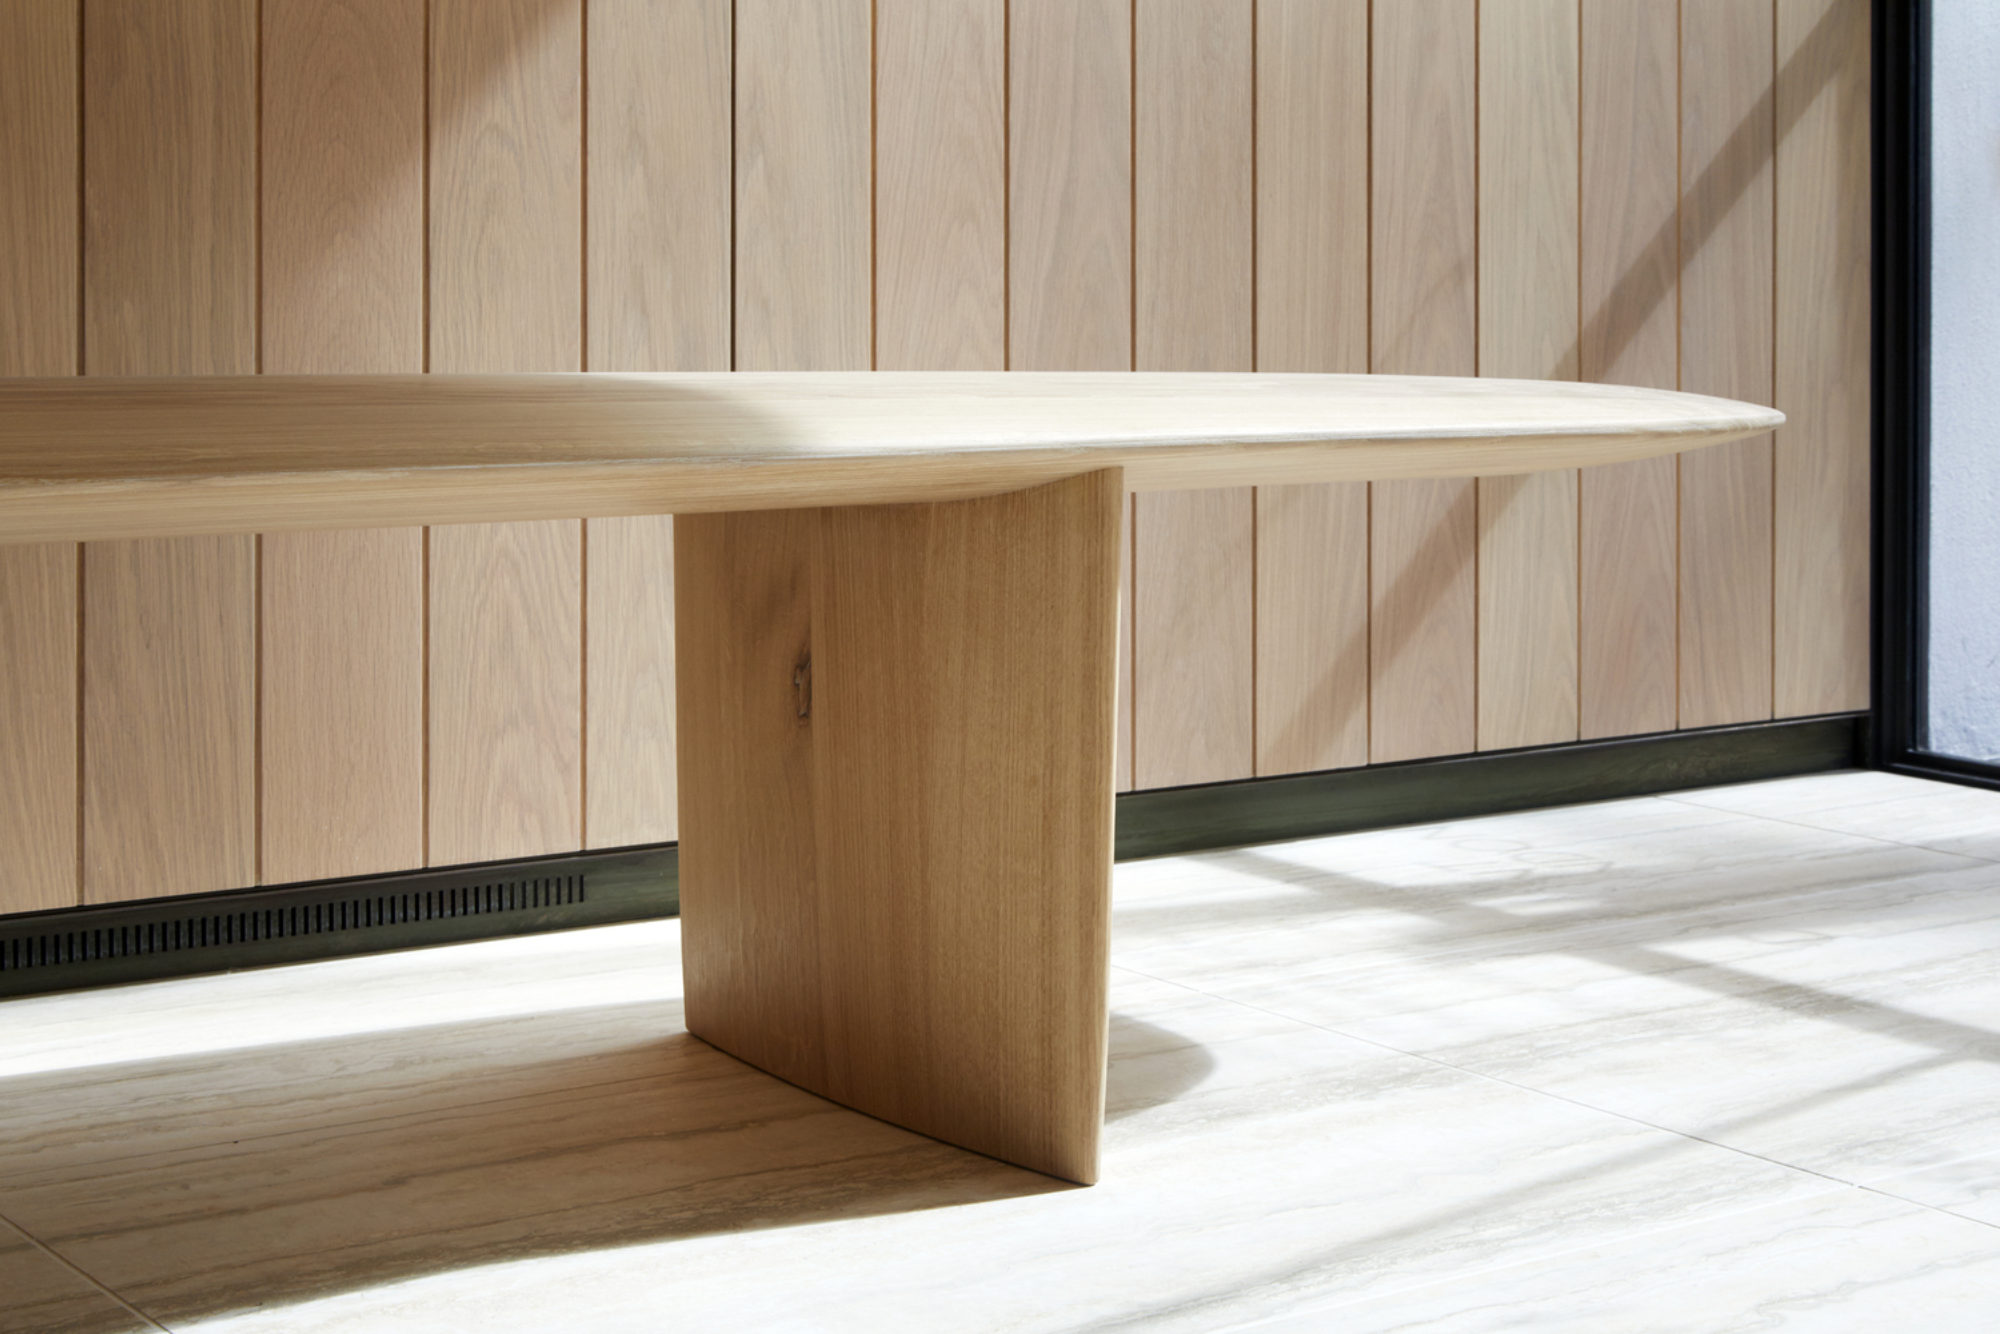 Ian McChesney bench at Savile Row wins Production category in Wood Awards 2019